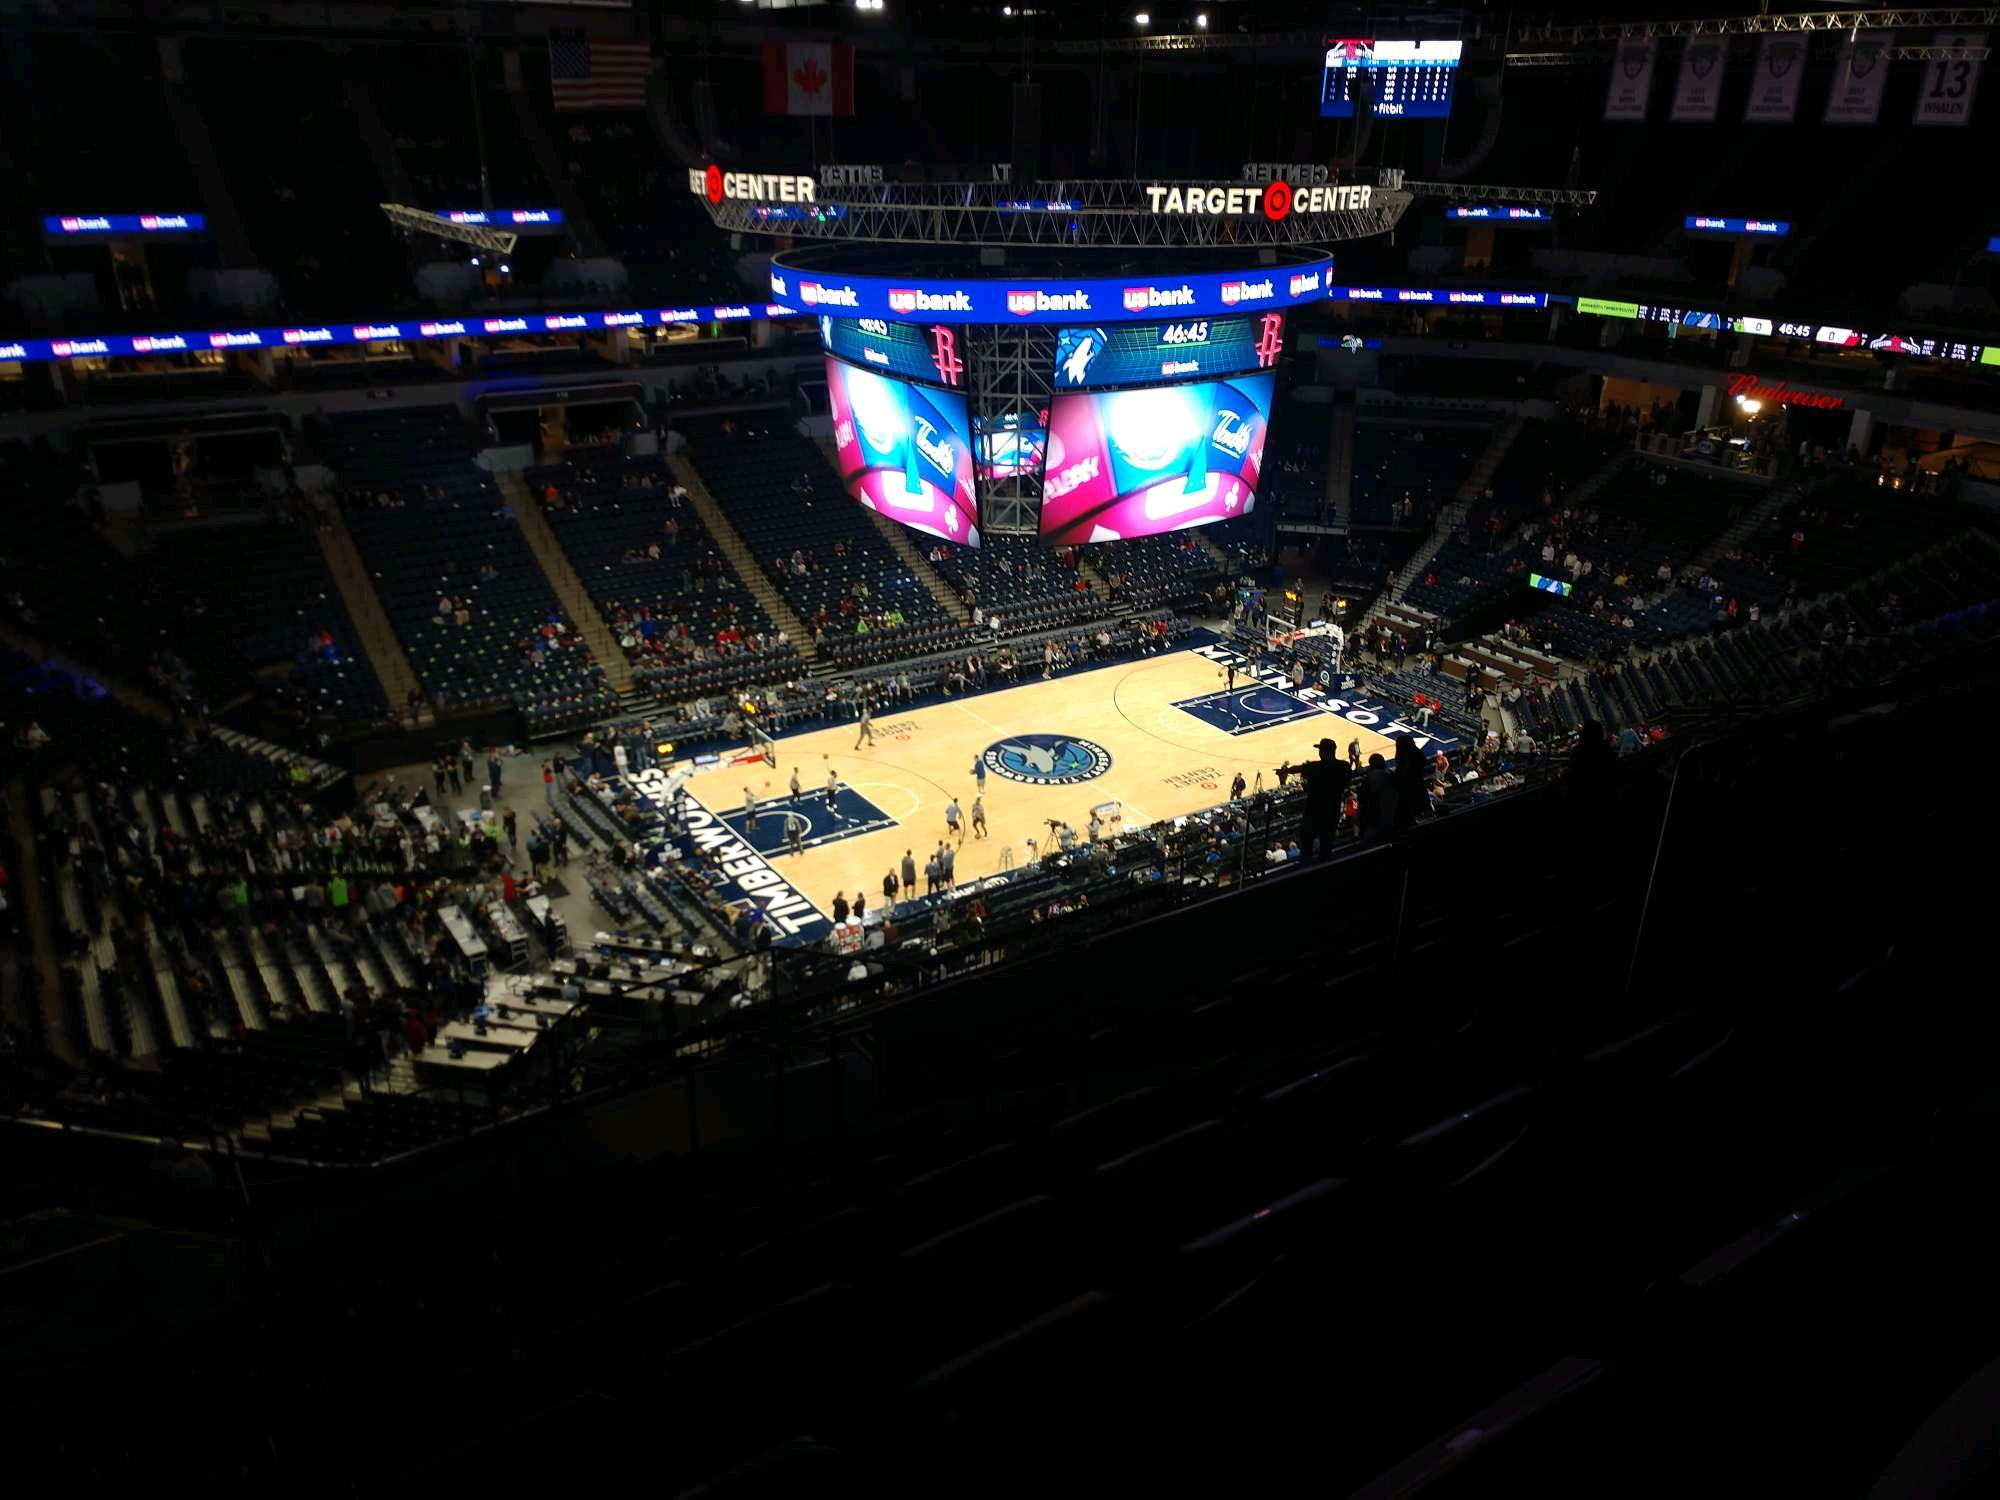 Target Center Section 235 Row T Seat 6